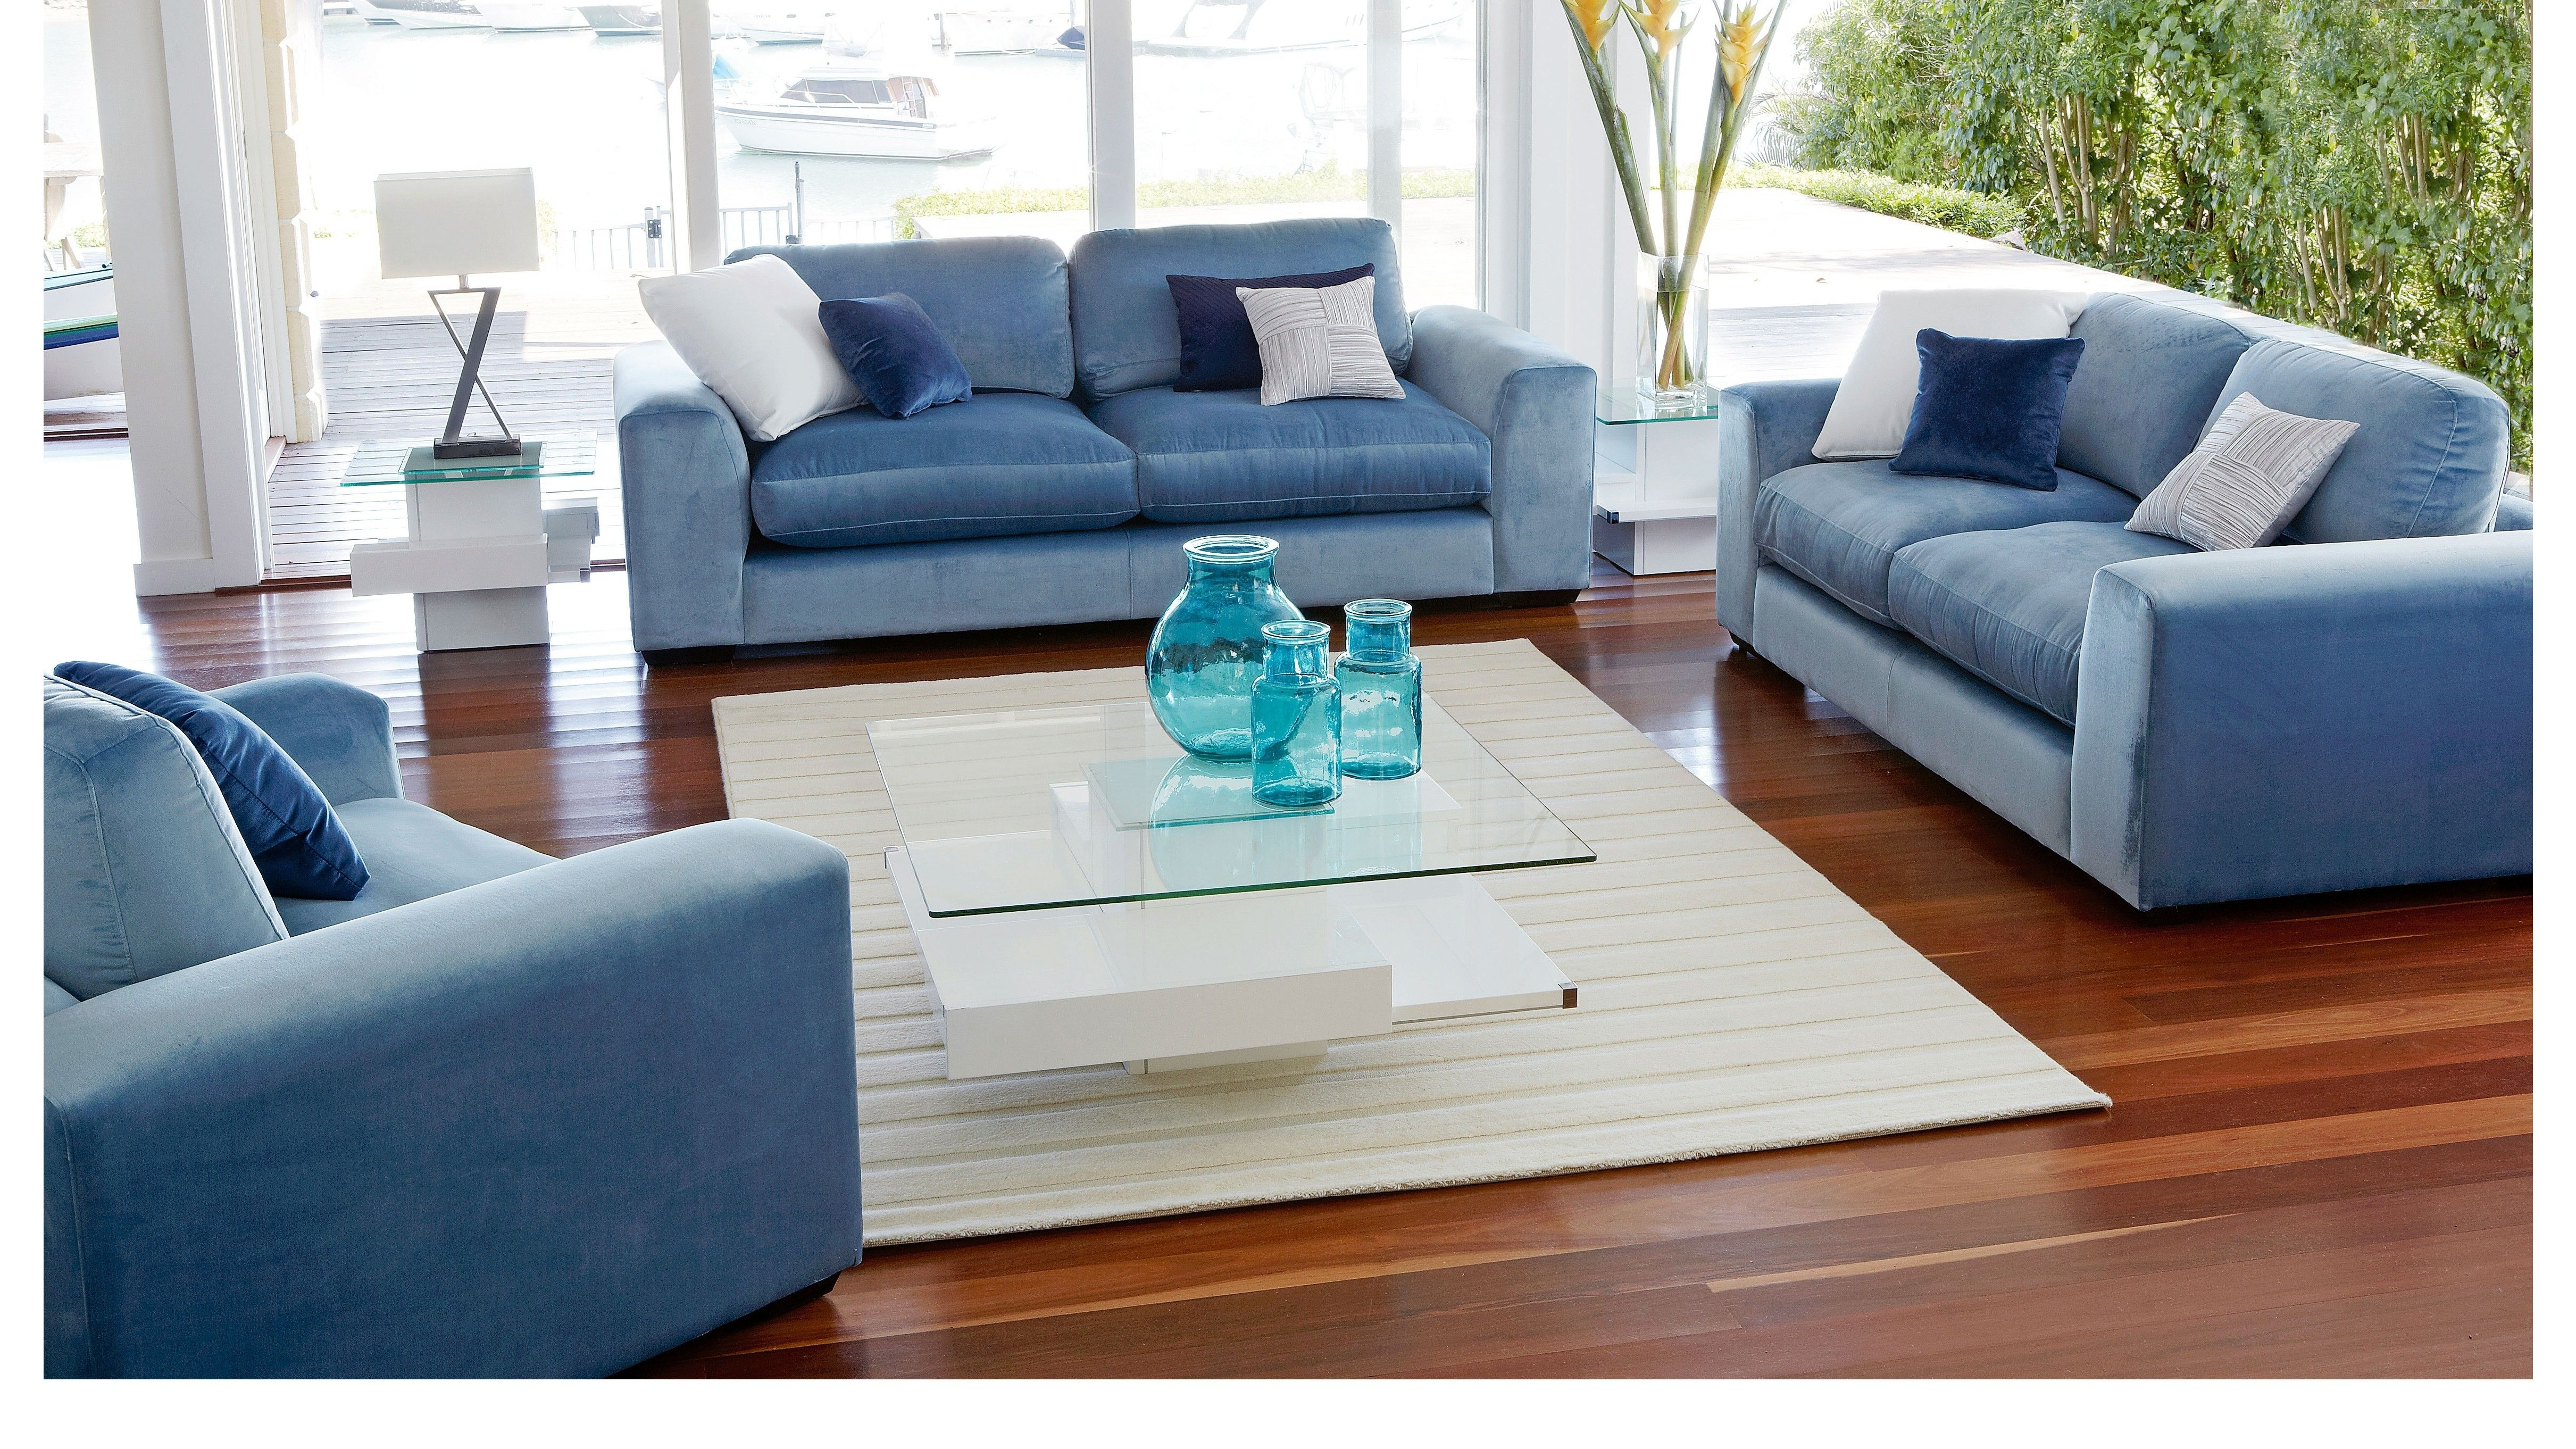 Catalina 3-Seater Sofa - in a chaise - Harvey Norman : harvey norman chaise - Sectionals, Sofas & Couches